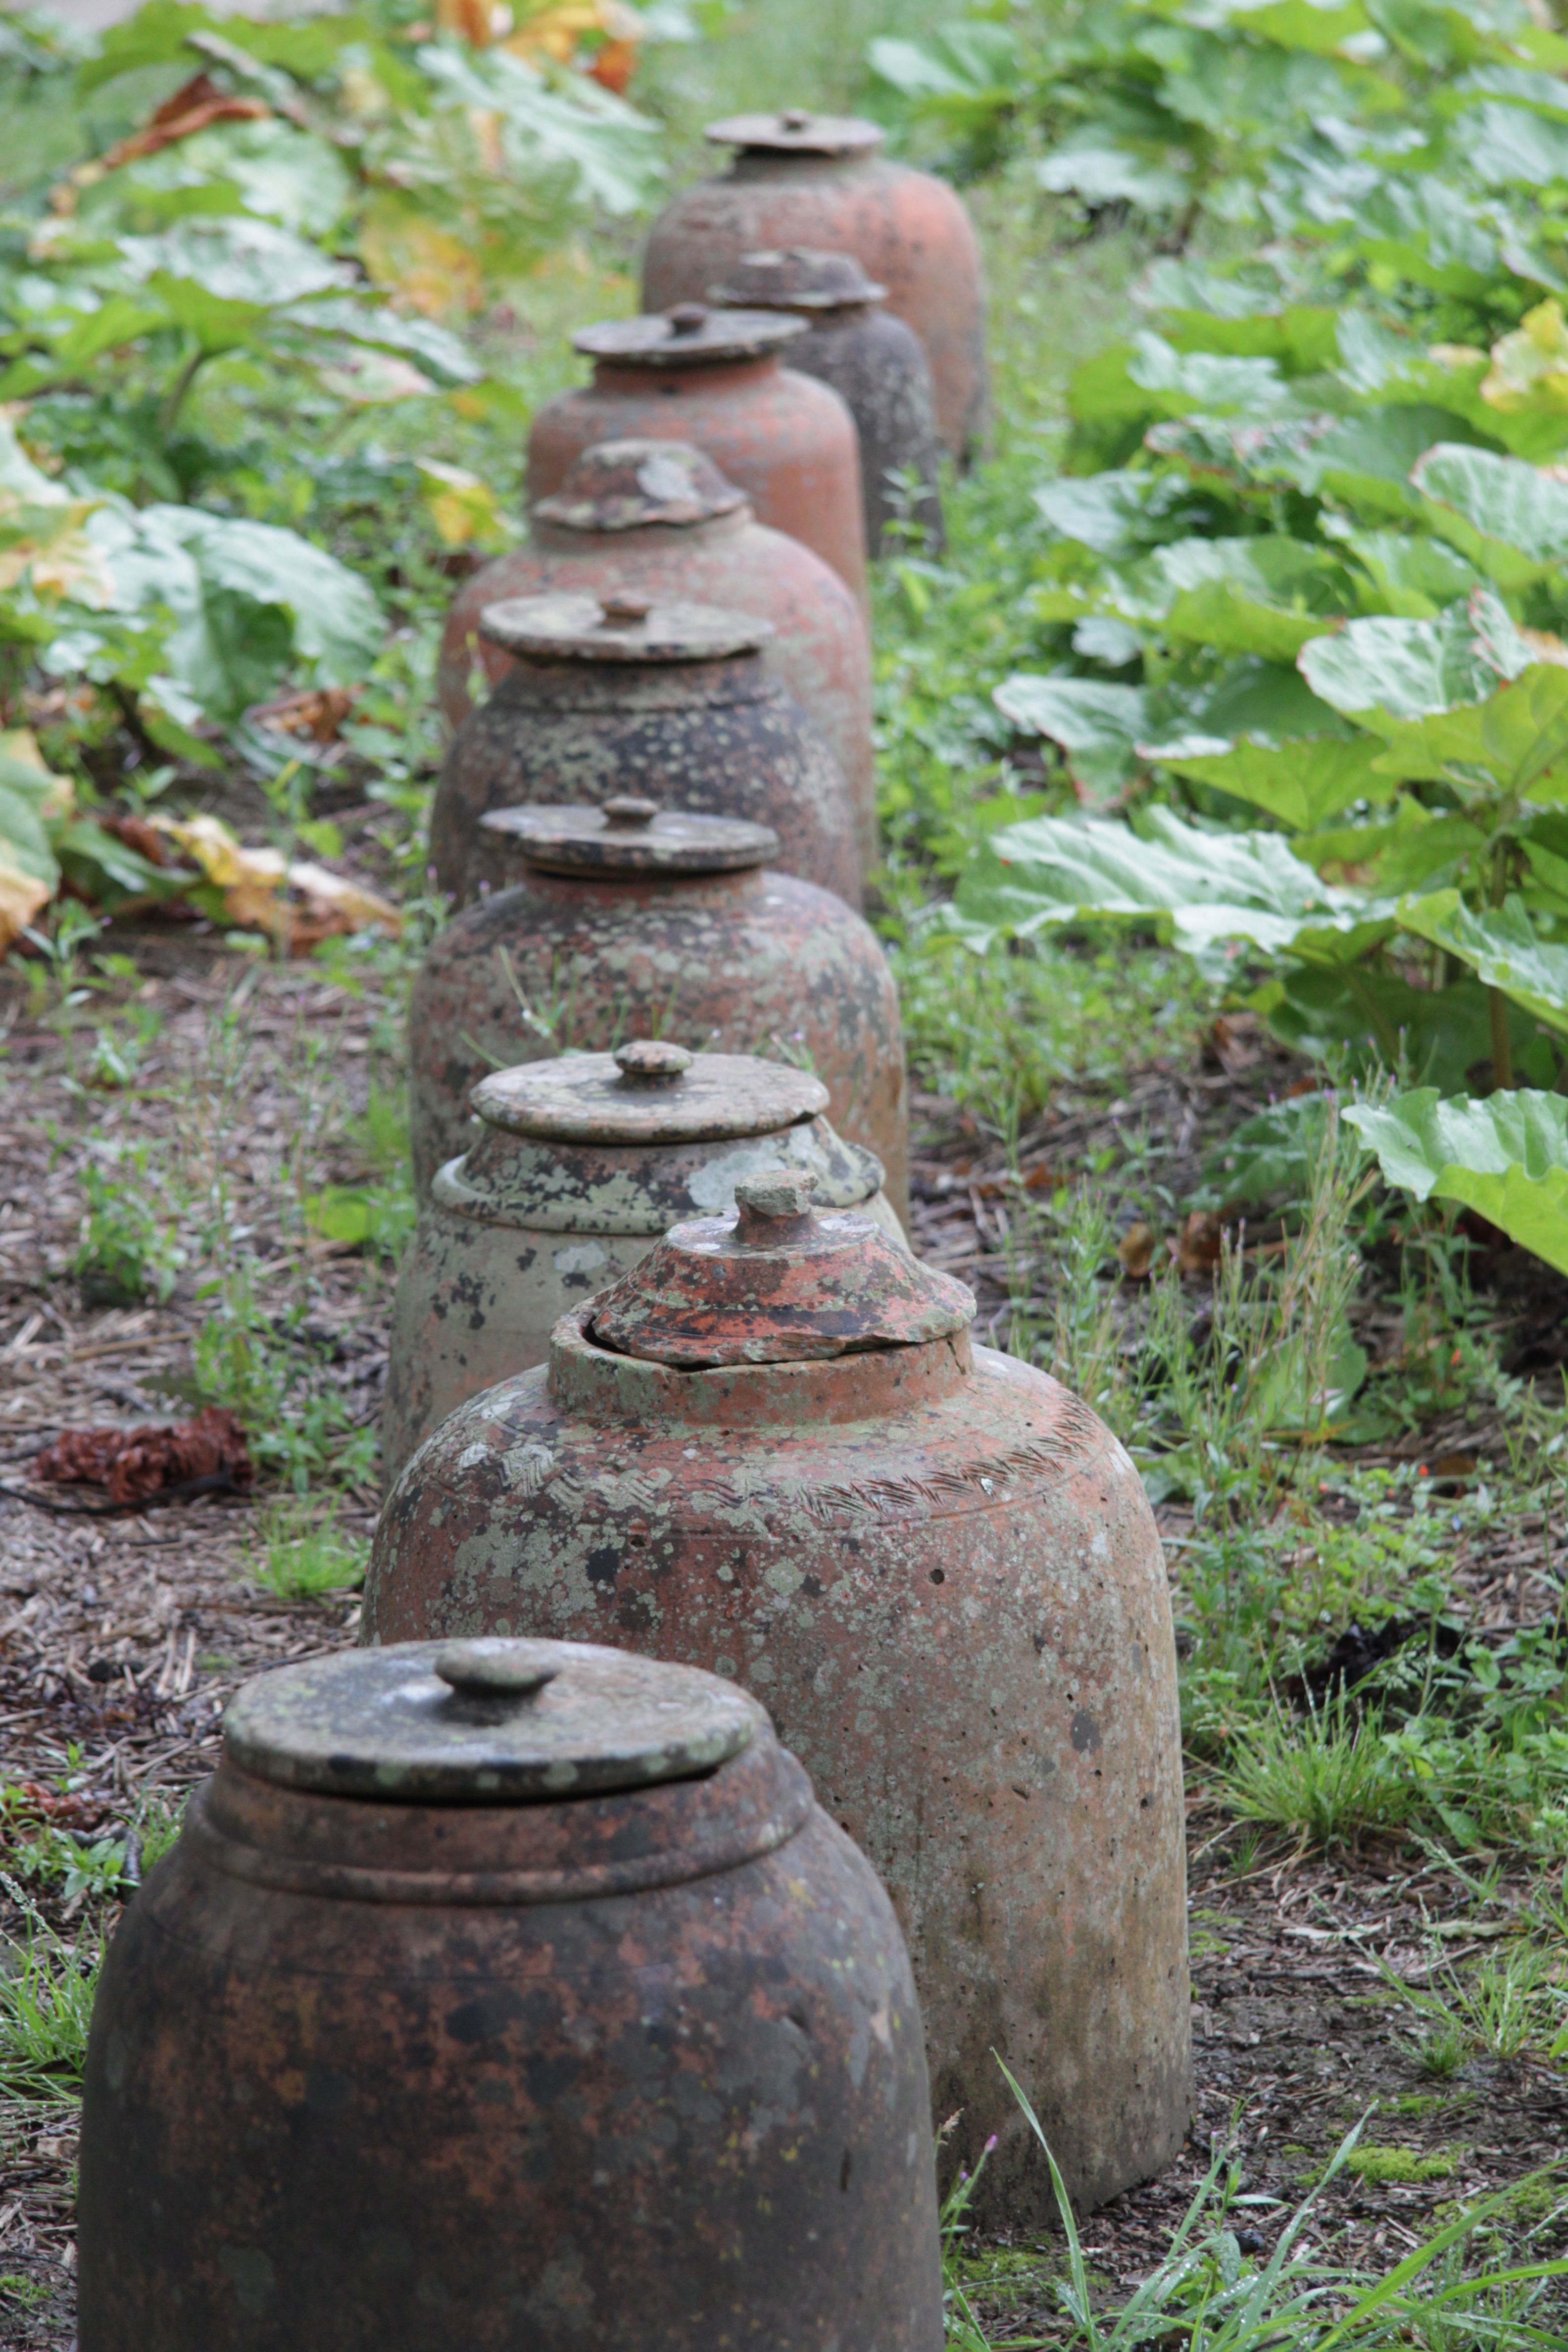 rhubarb forcing pots - Rhubarb can also be forced outdoors during the winter by placing large light-proof pots (like plastic garbage cans) over the crowns and if possible insulating with straw, or better still, fresh horse manure which is warm and will speed up the forcing process.